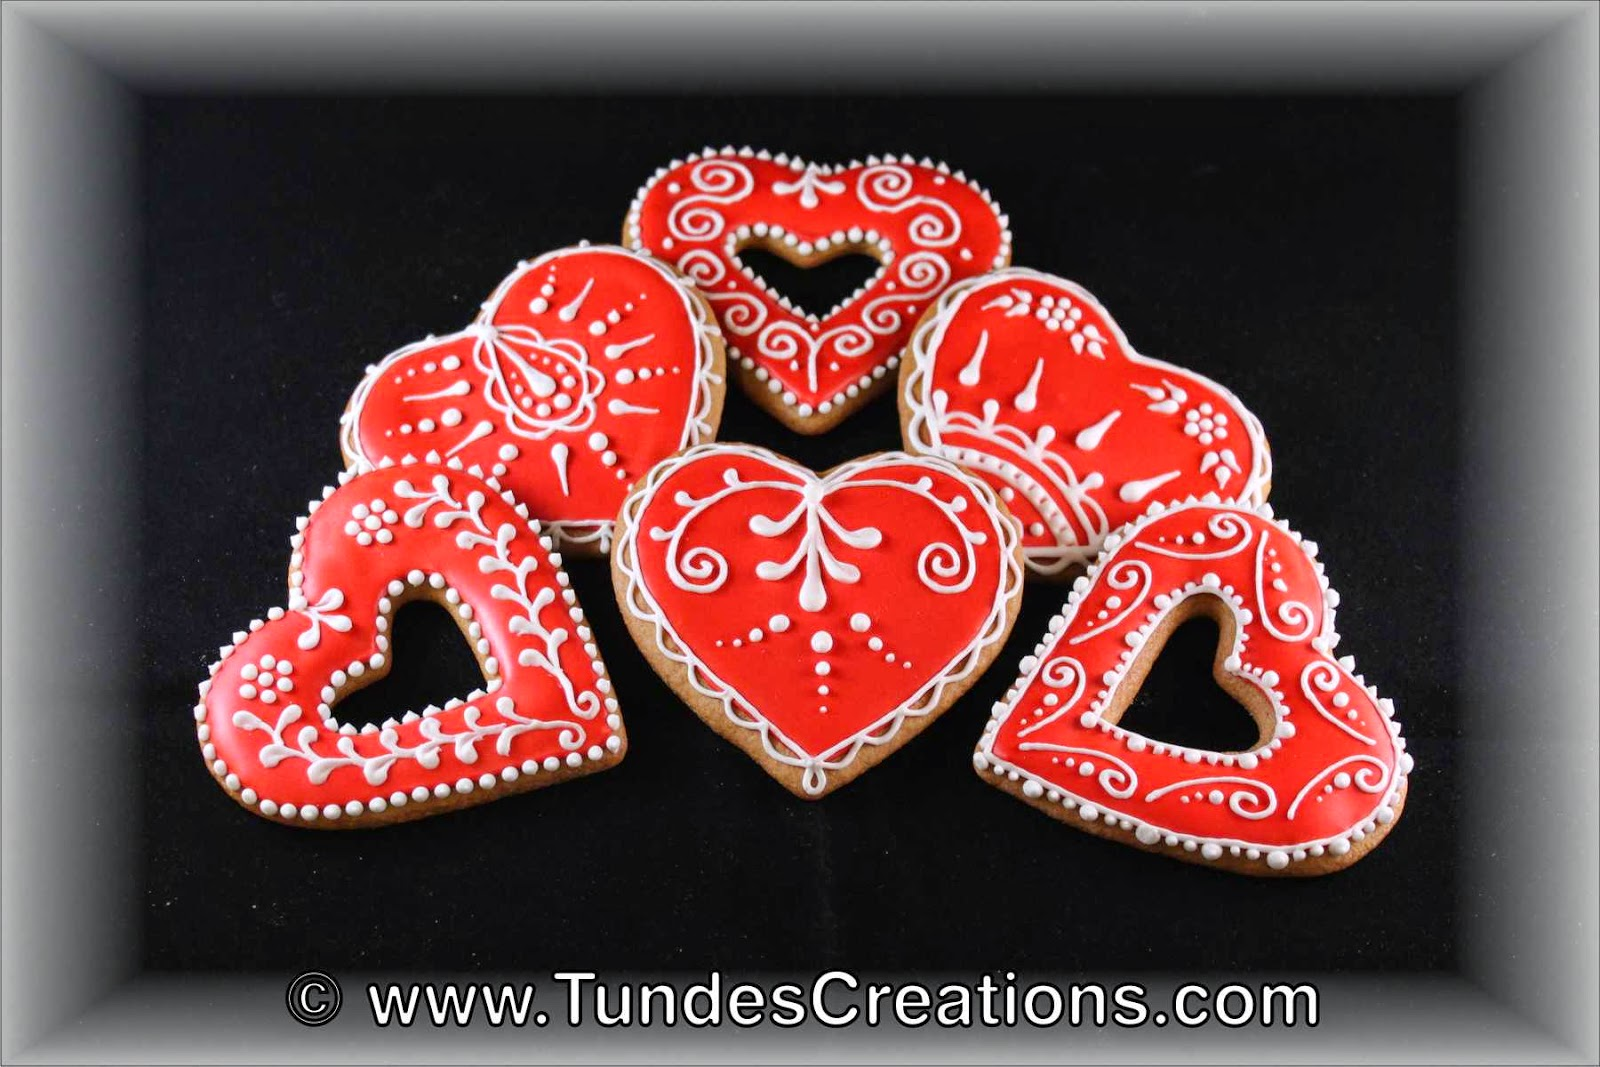 Red and white traditional Valentine's gingerbread hearts.